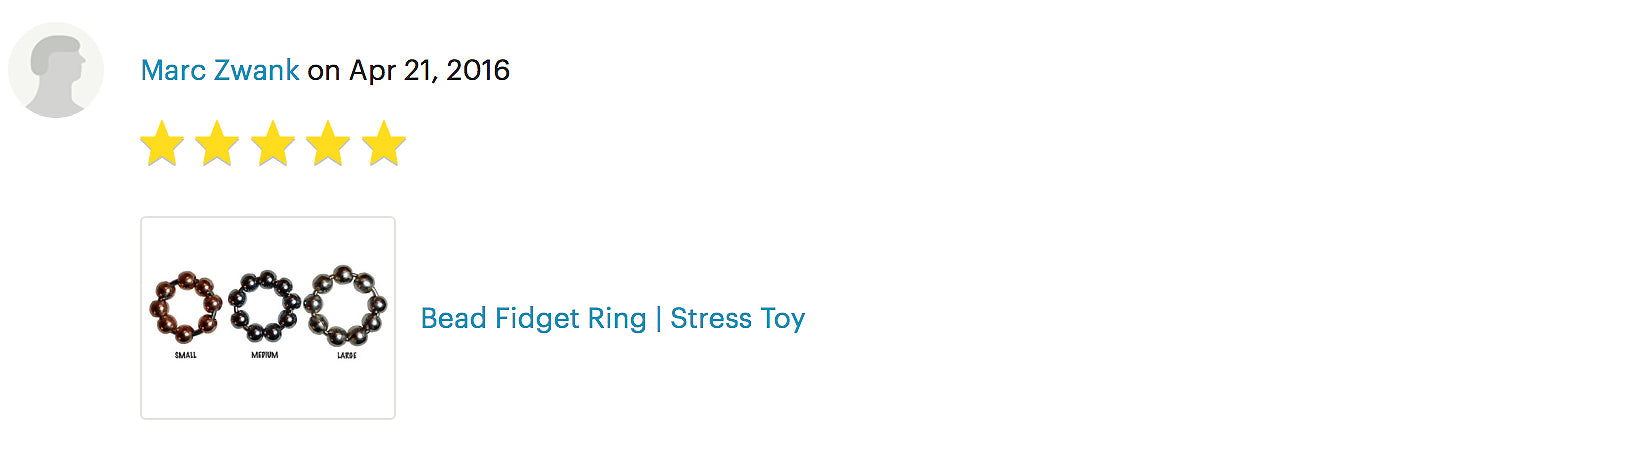 Bead Fidget Ring | Stress Toy product review